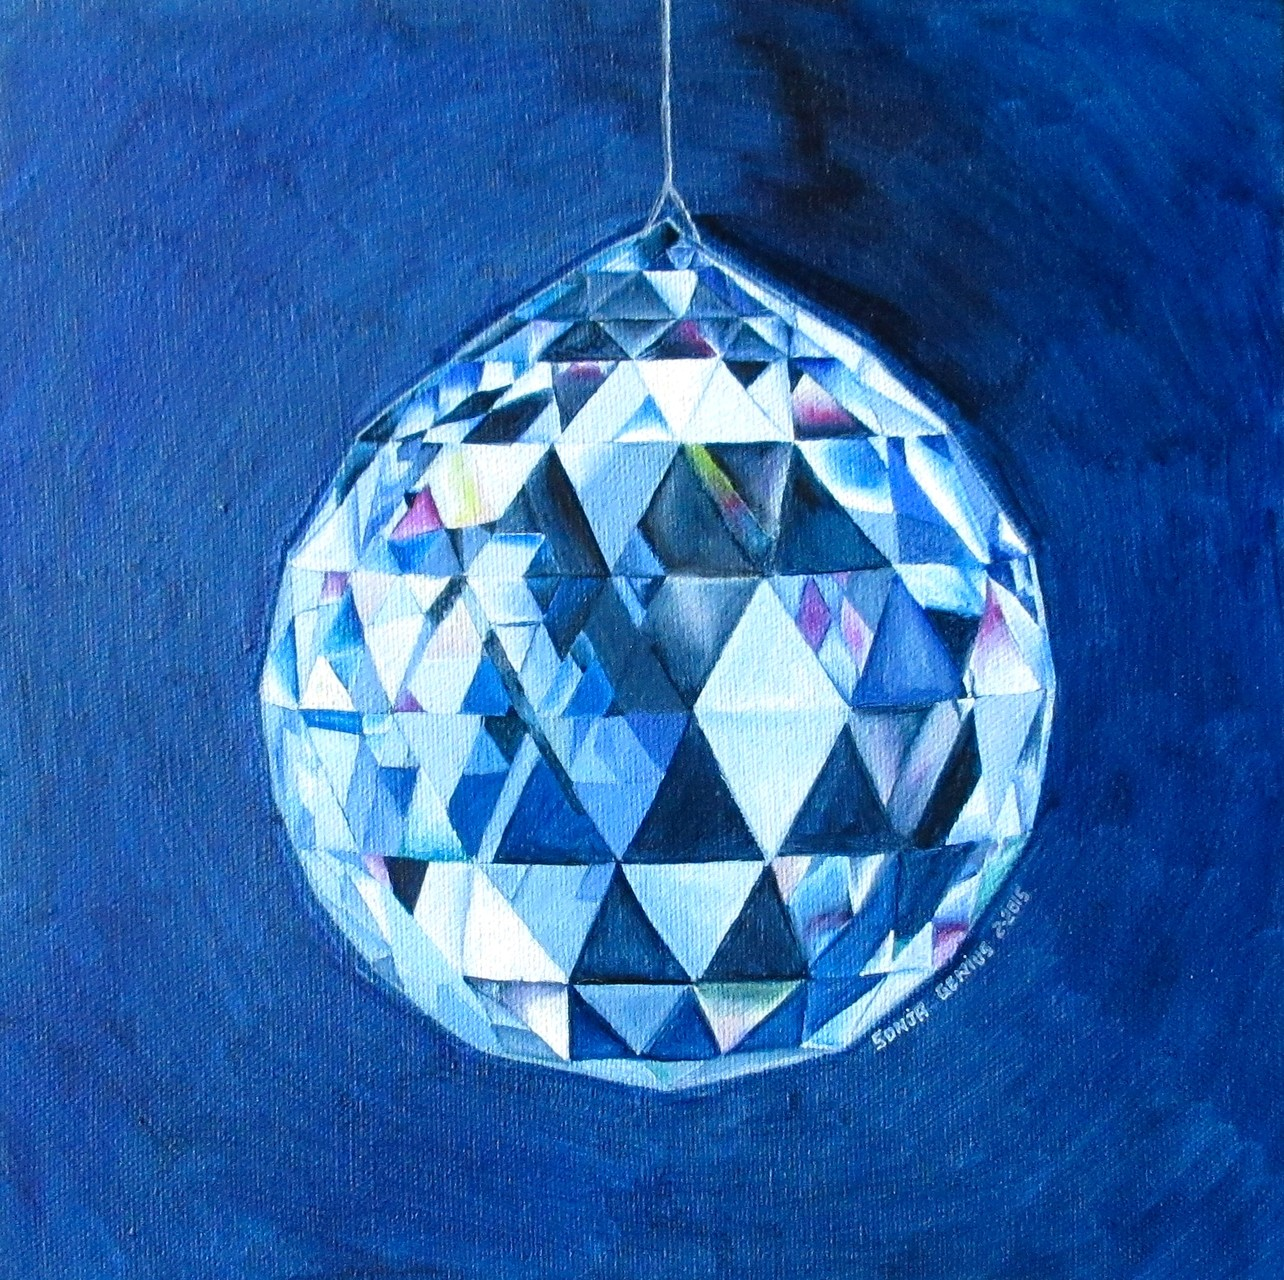 """(SOLD 2016)----""""Crystal"""", oil on canvas 10x10, Feb.2016 - (1-2-65)"""